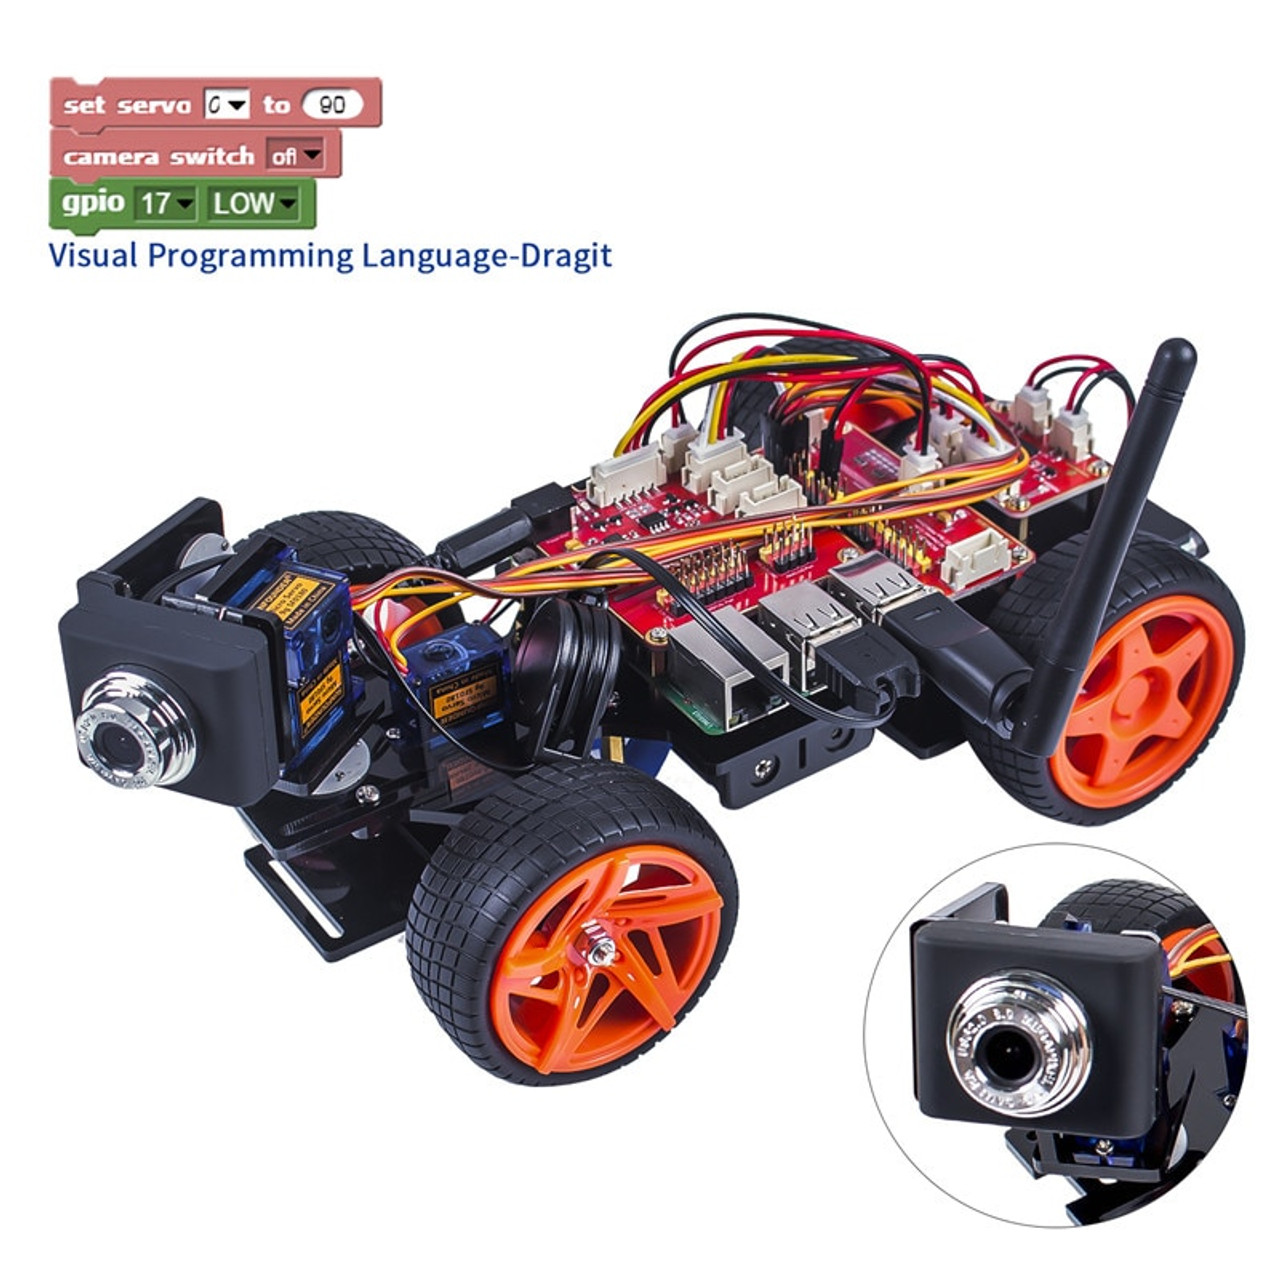 SunFounder Remote Control Robot Kit For Raspberry Pi 3 Smart Video Car Kit  V2 0 RC Robot App Controlled Toys (RPi Not included)